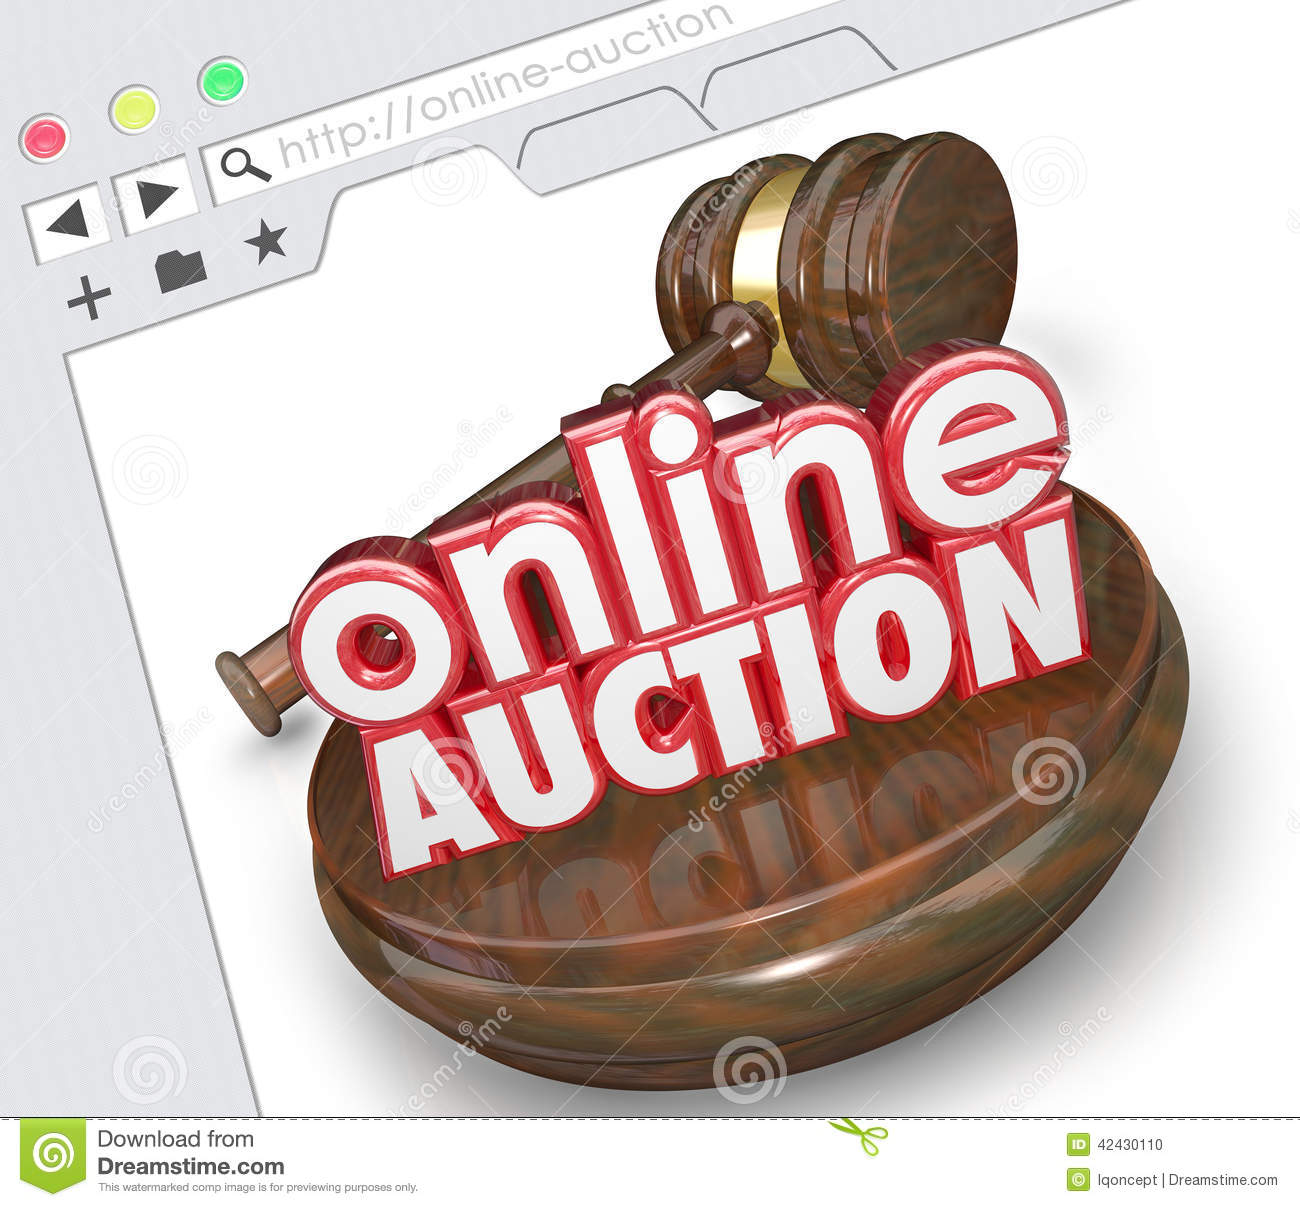 Selling Your Antiques at Internet Auctions